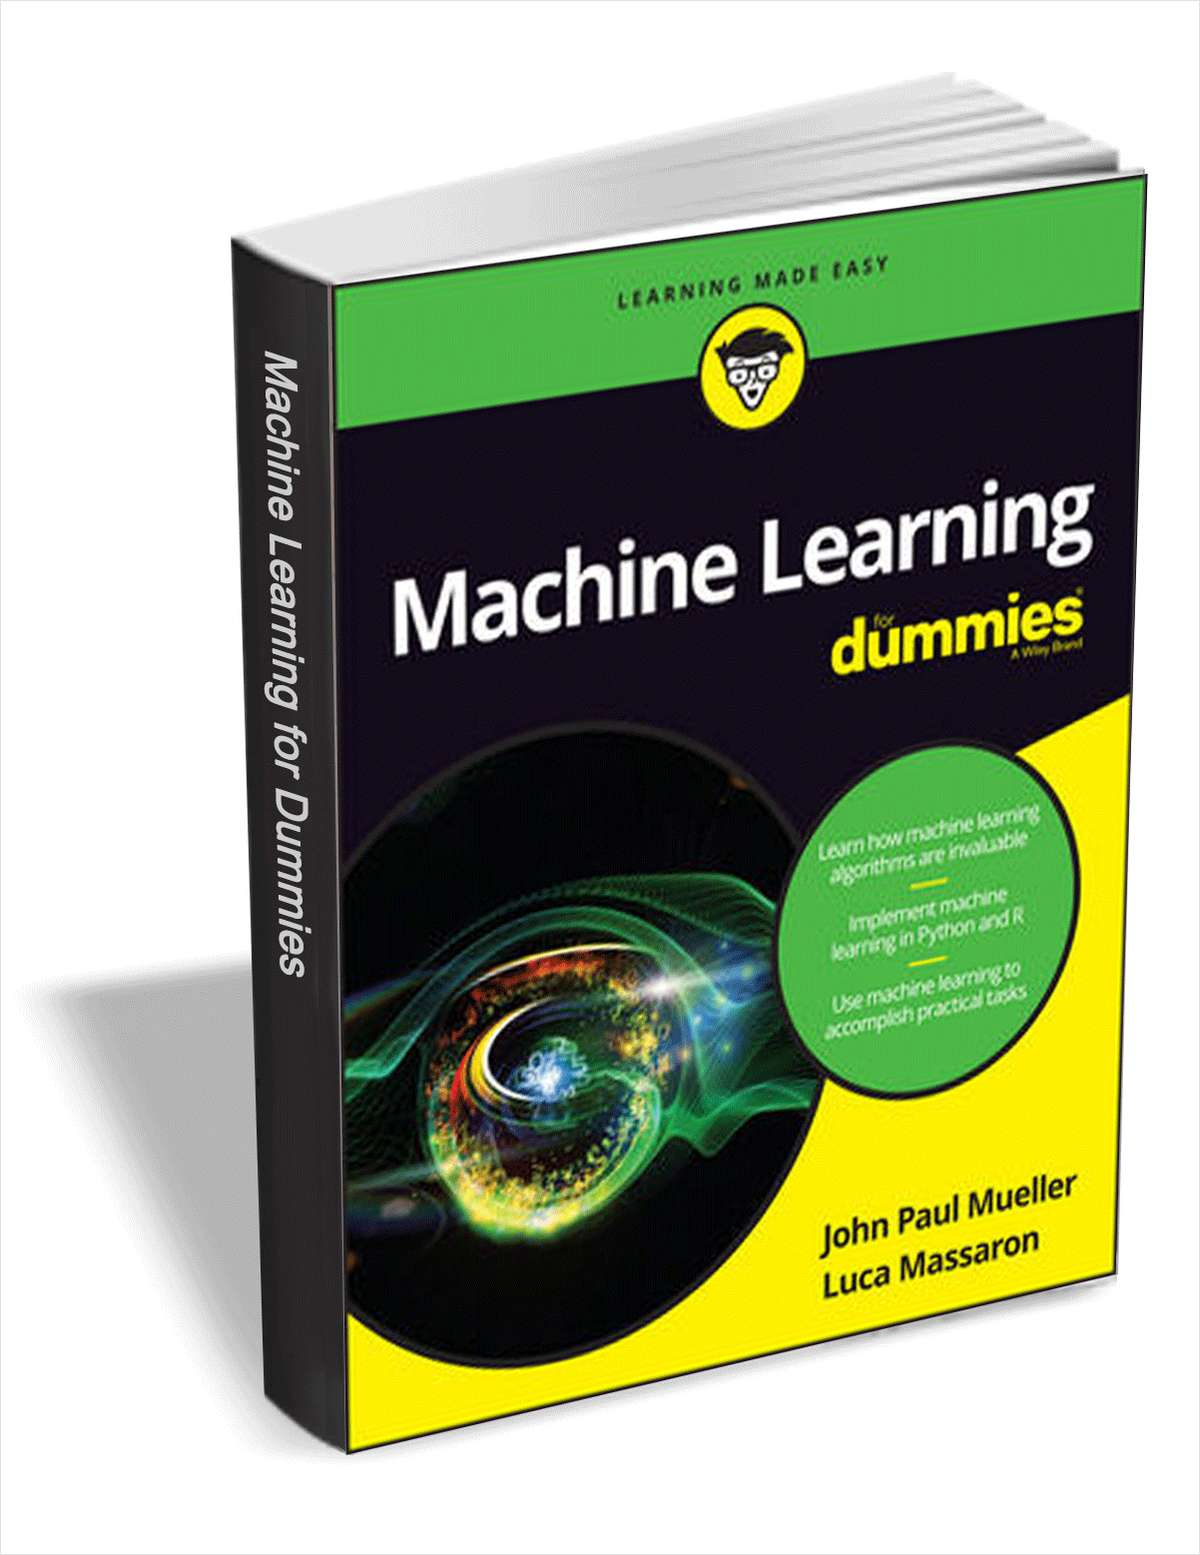 Machine Learning For Dummies ($13 Value) FREE For a Limited Time